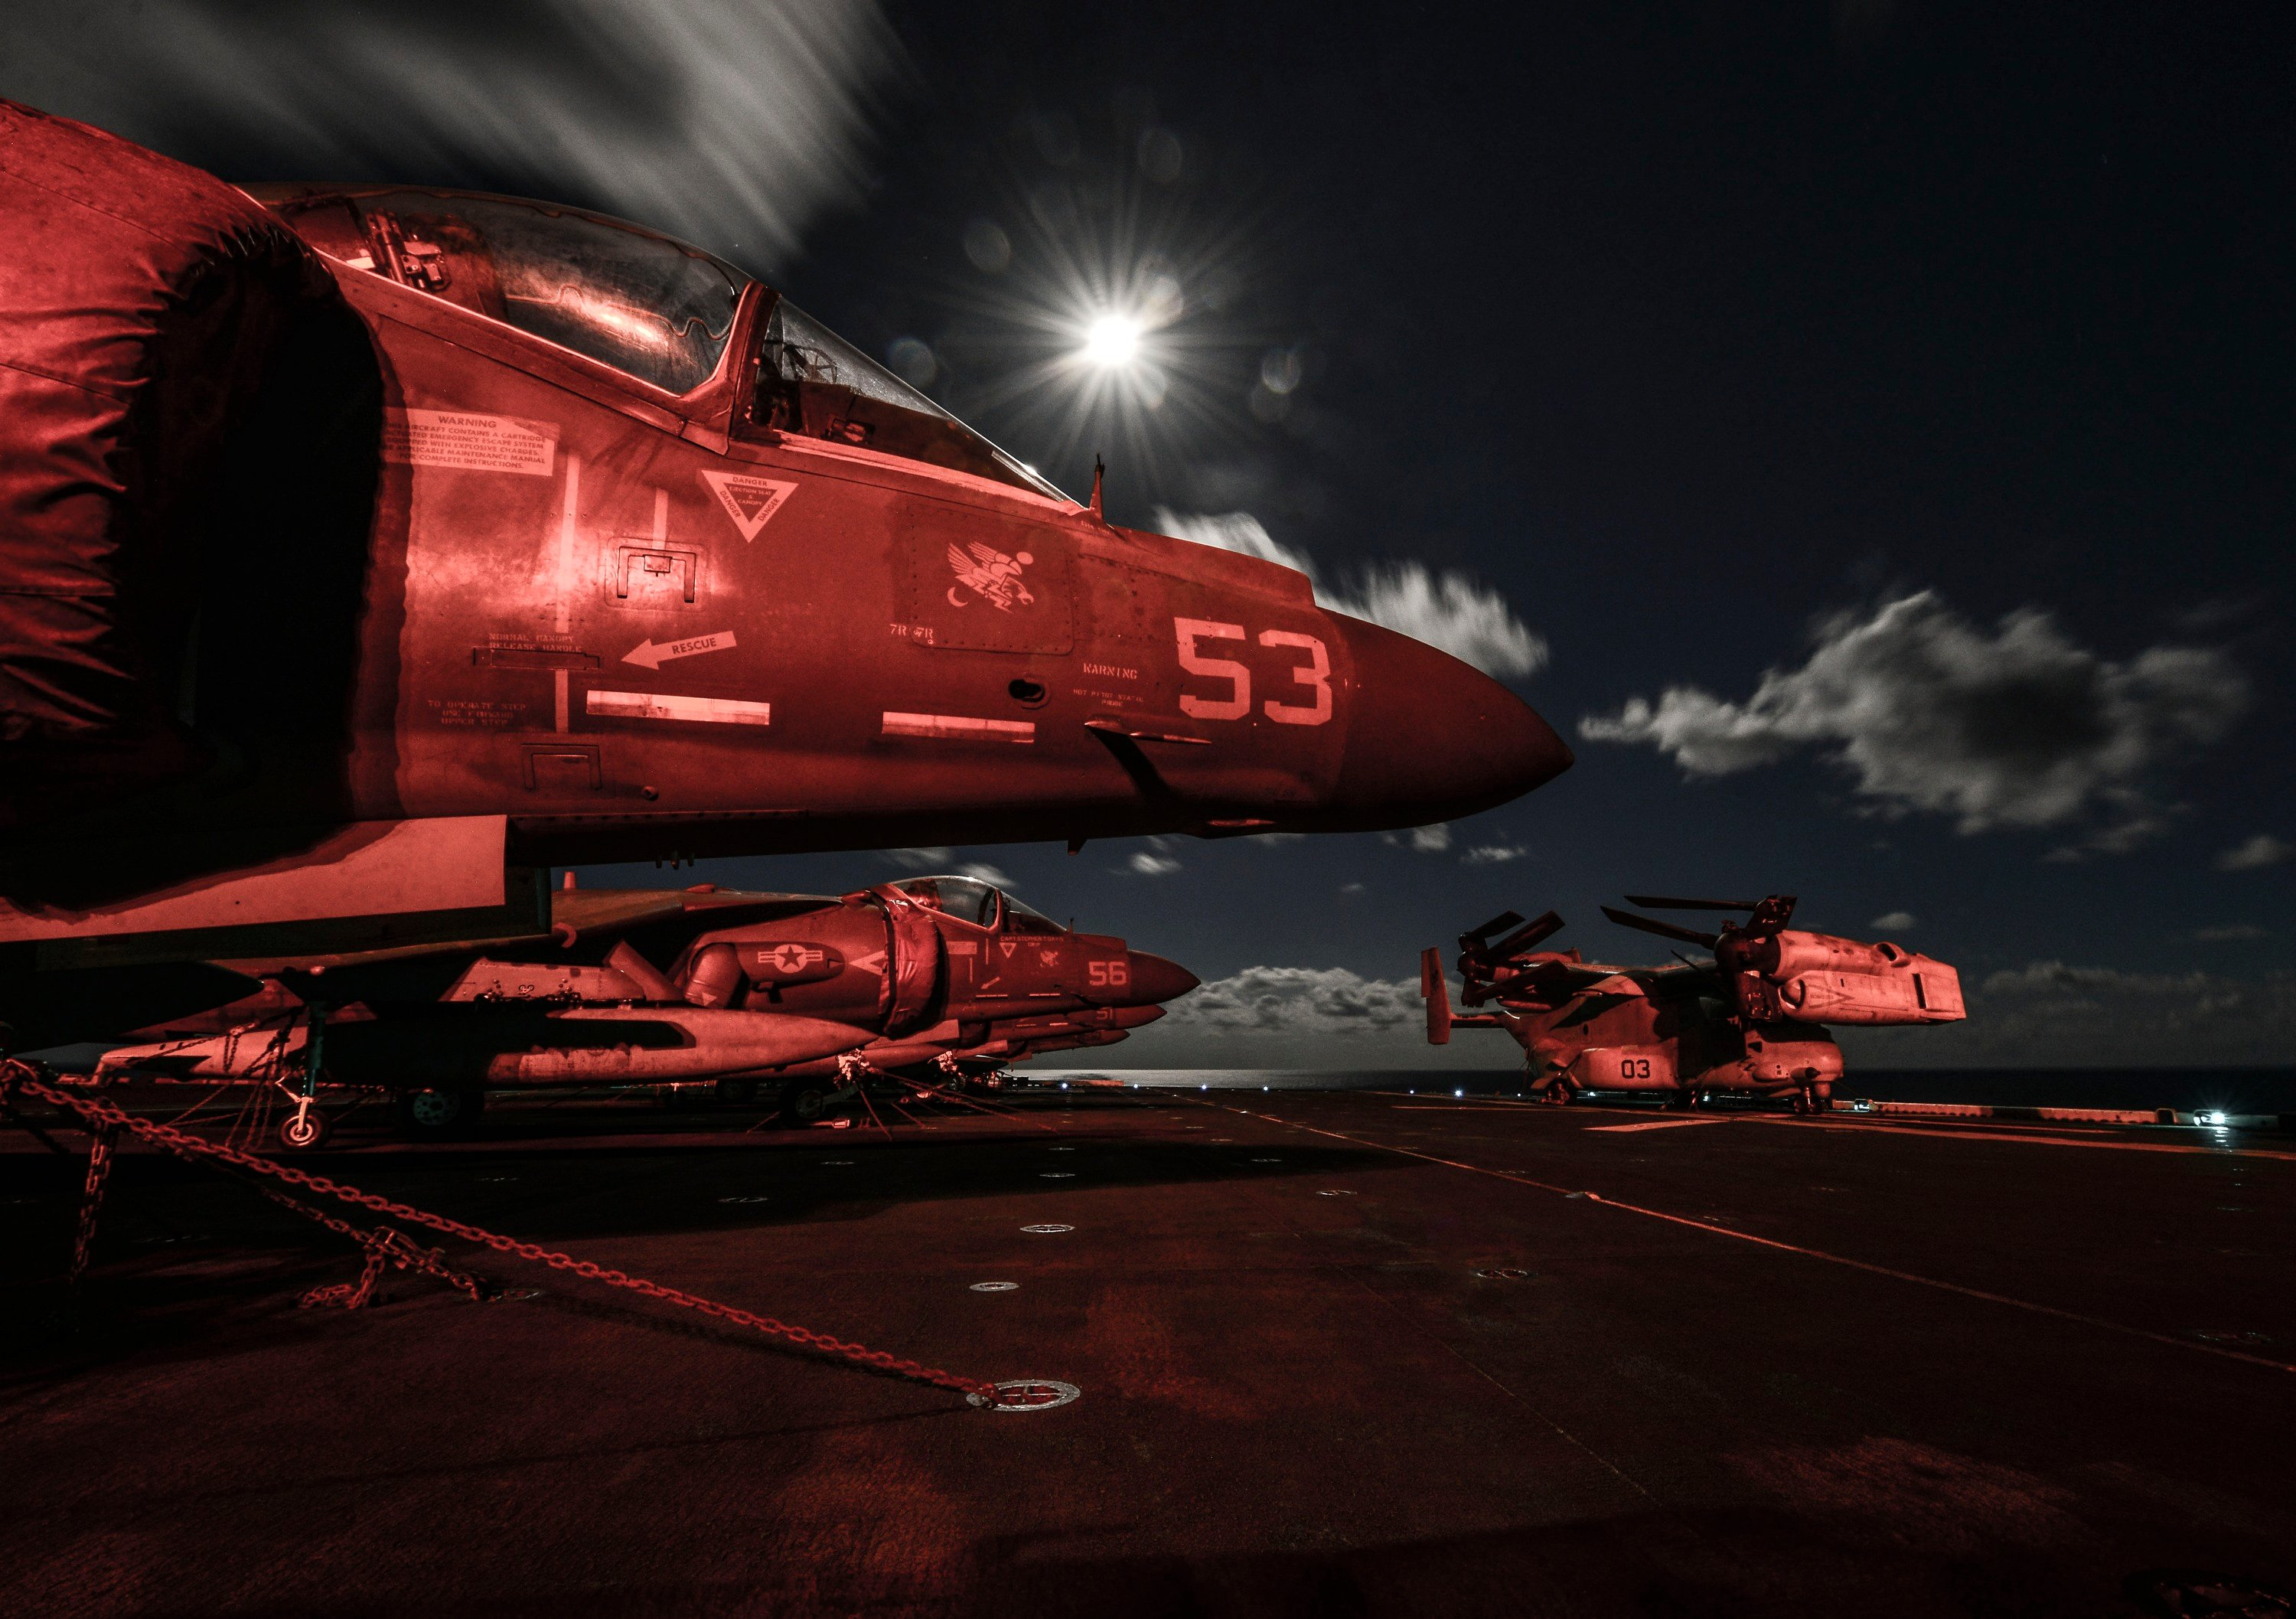 AV-8B Harriers sit on the flight deck at night aboard the amphibious assault ship USS Bataan (LHD-5) on Oct. 3, 2014. US Navy Photo